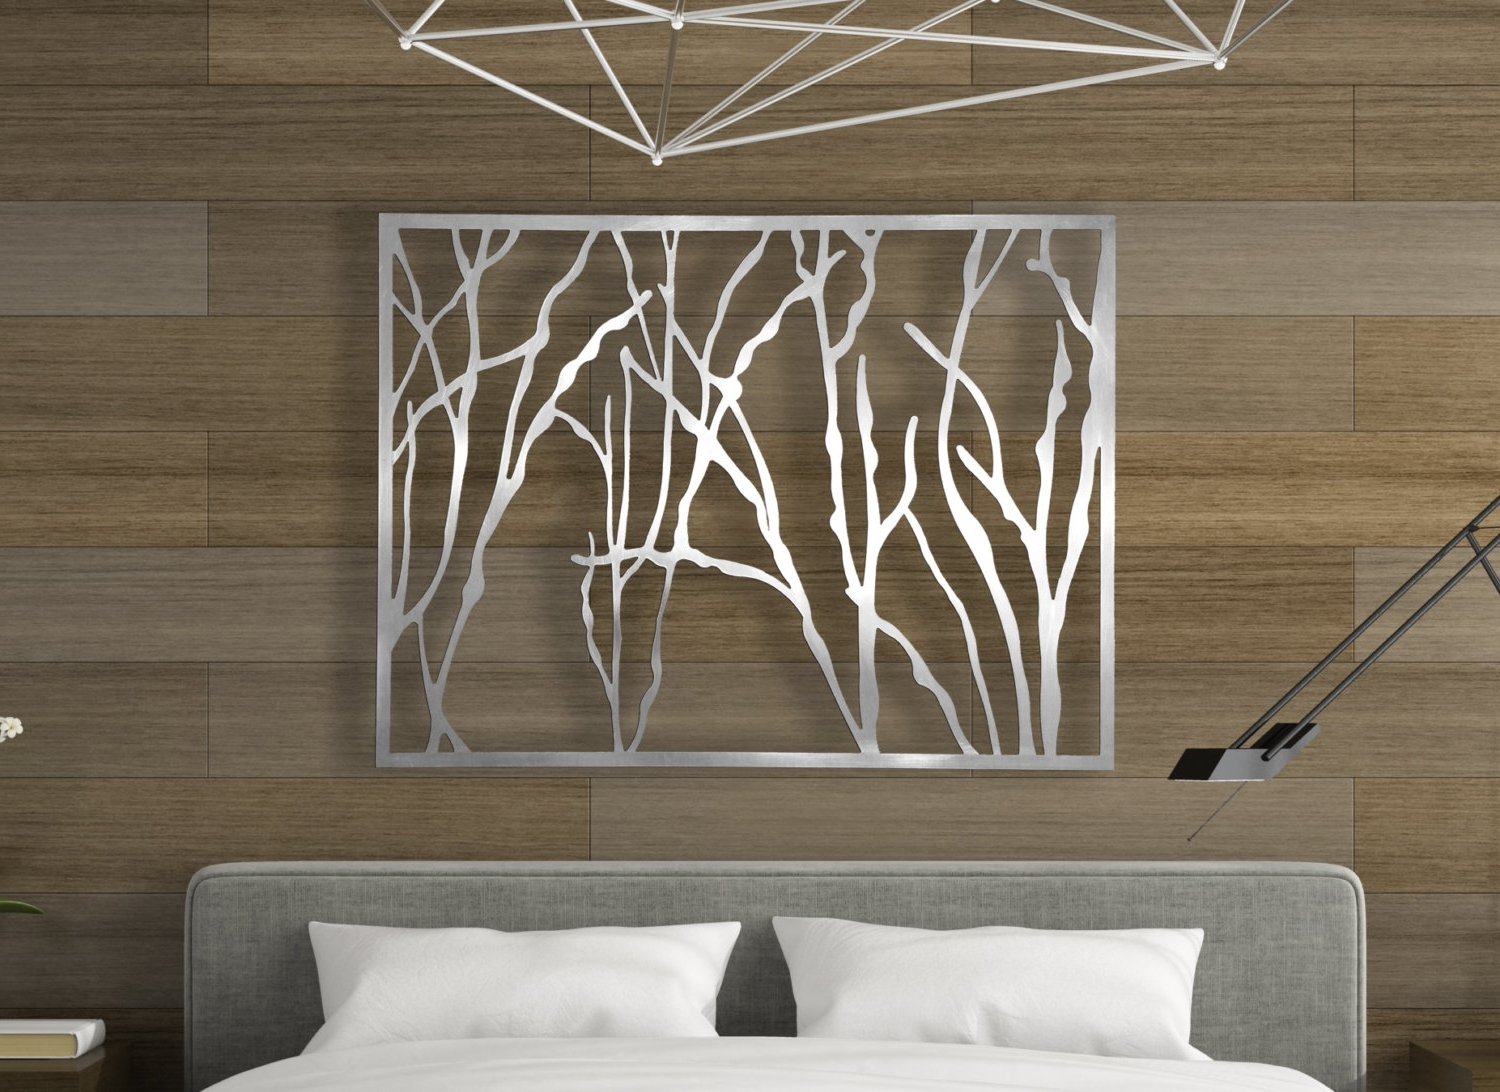 Metal Wall Art Panels In Most Recent Popular Metal Wall Art Panels : Andrews Living Arts – Good Design (View 9 of 20)